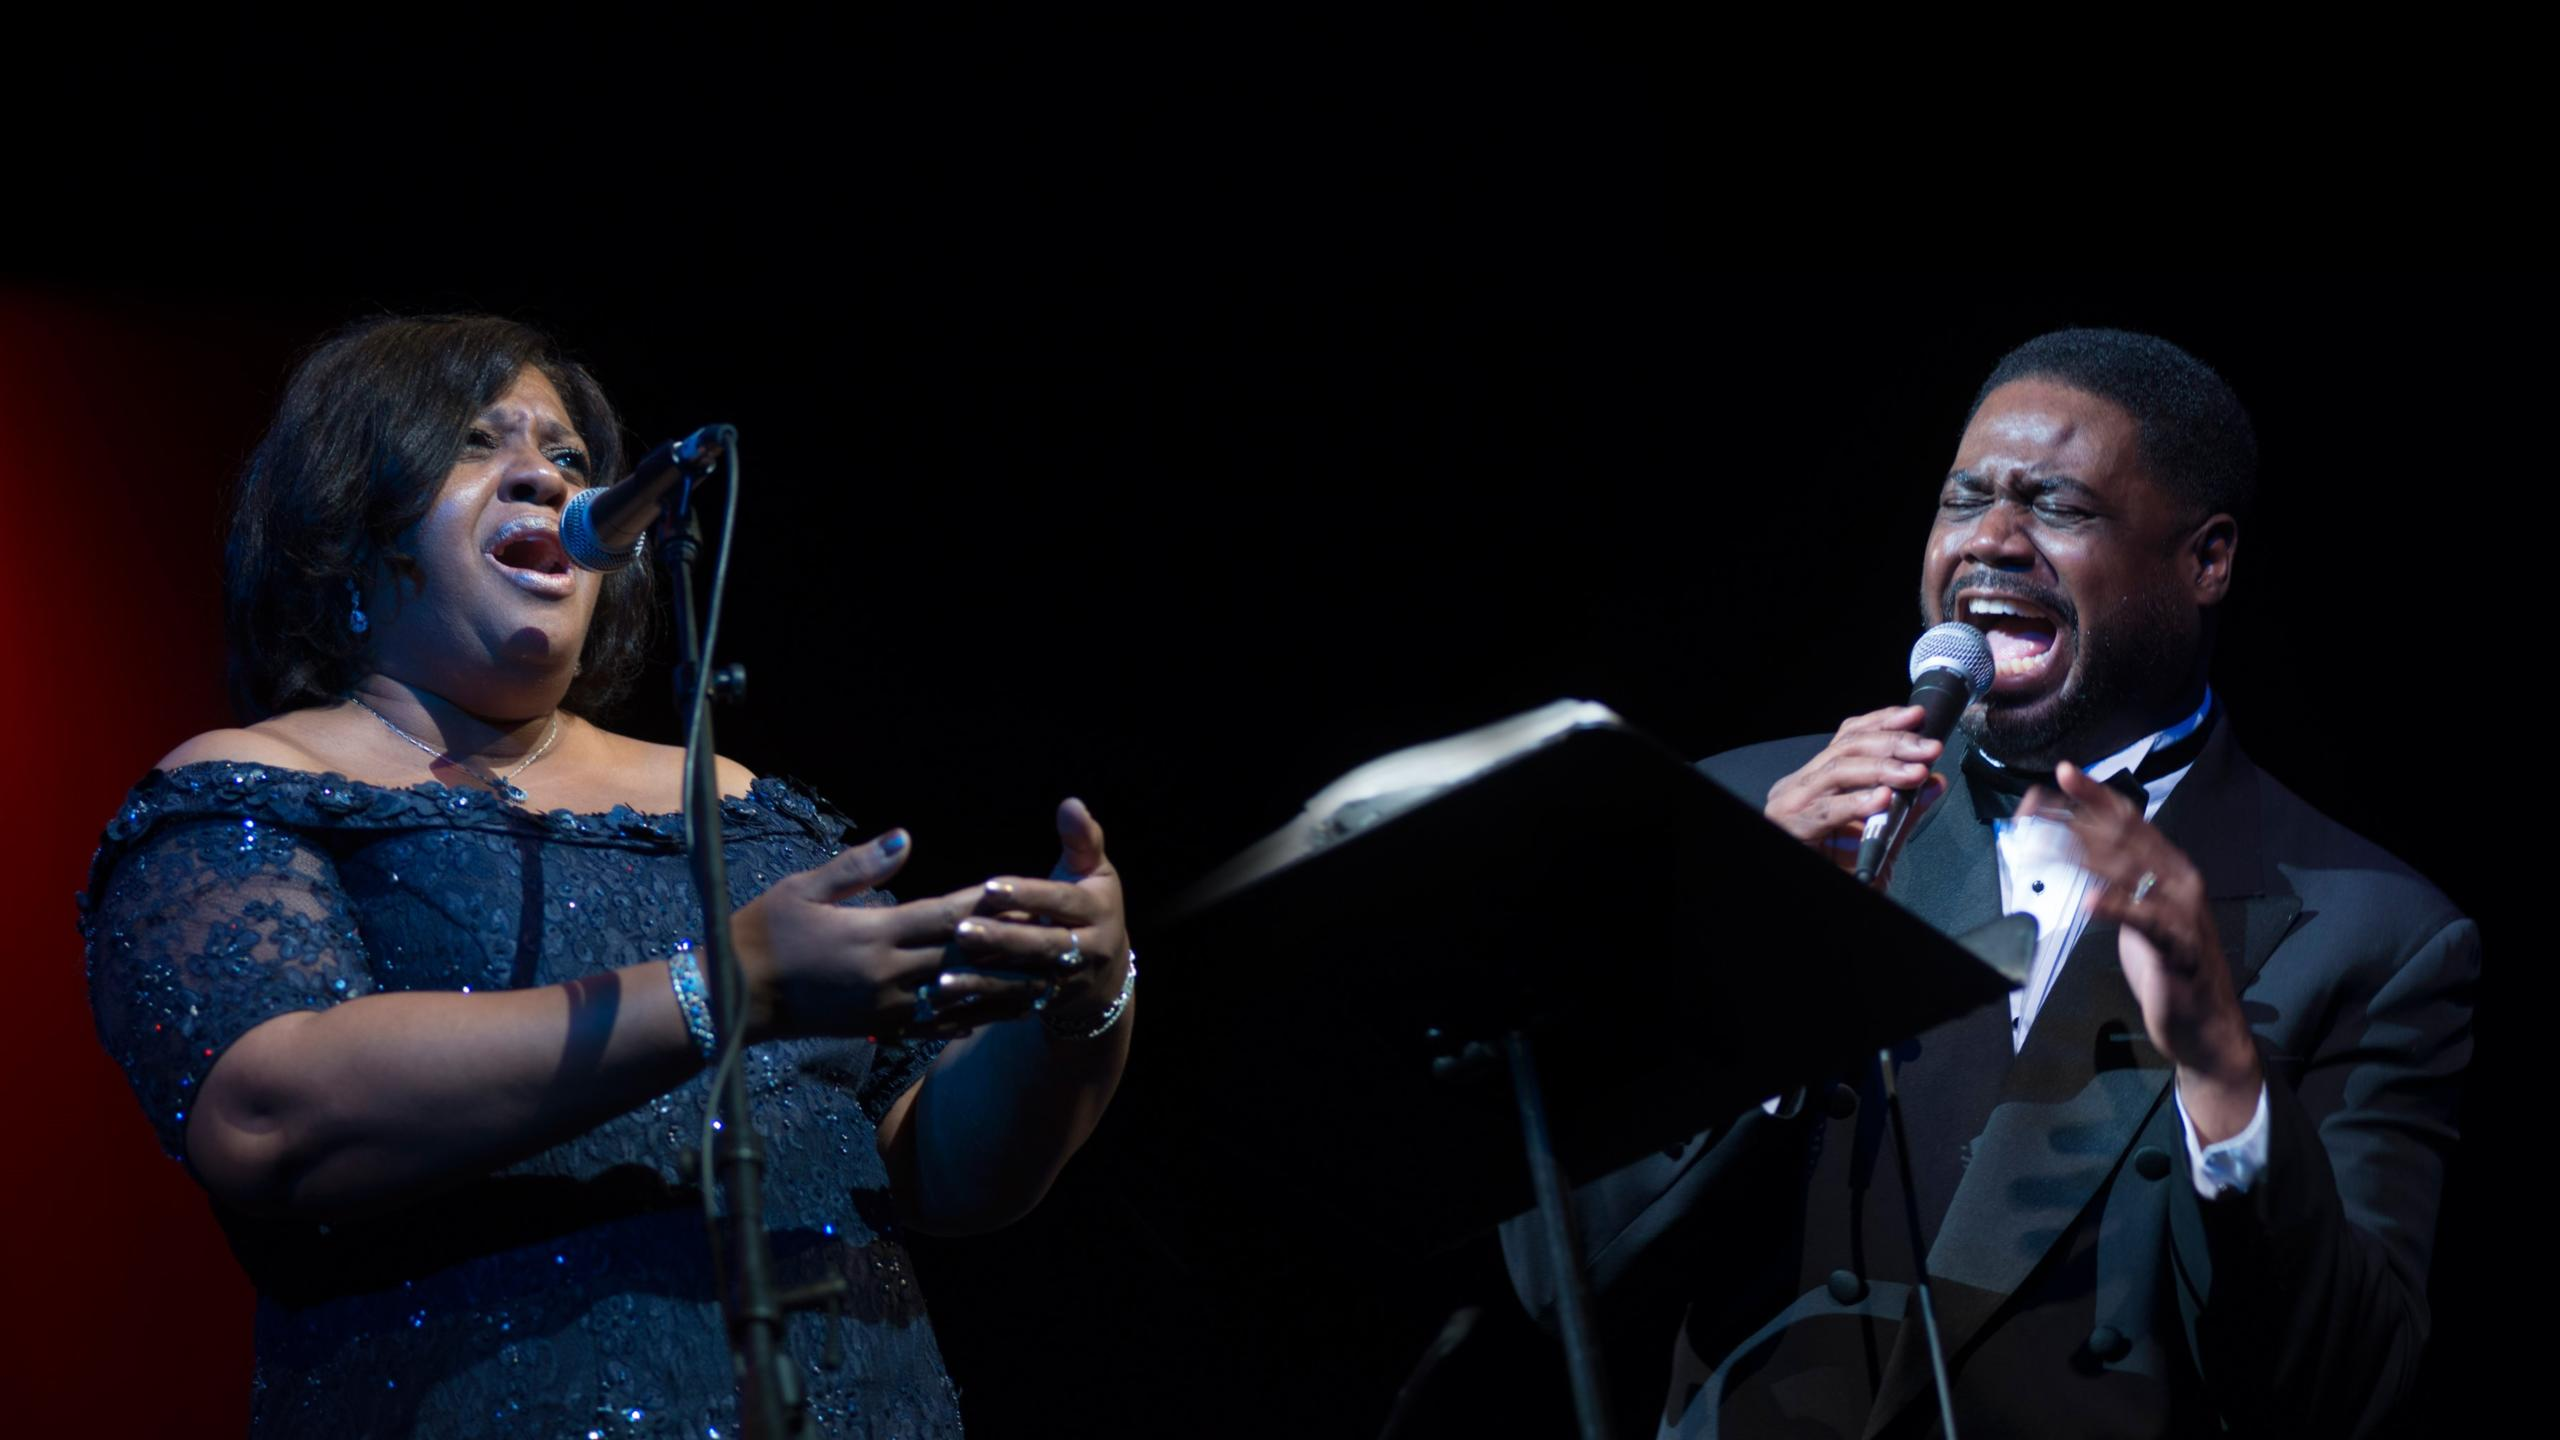 A Holiday Concert with Alfreda Burke & Rodrick Dixon